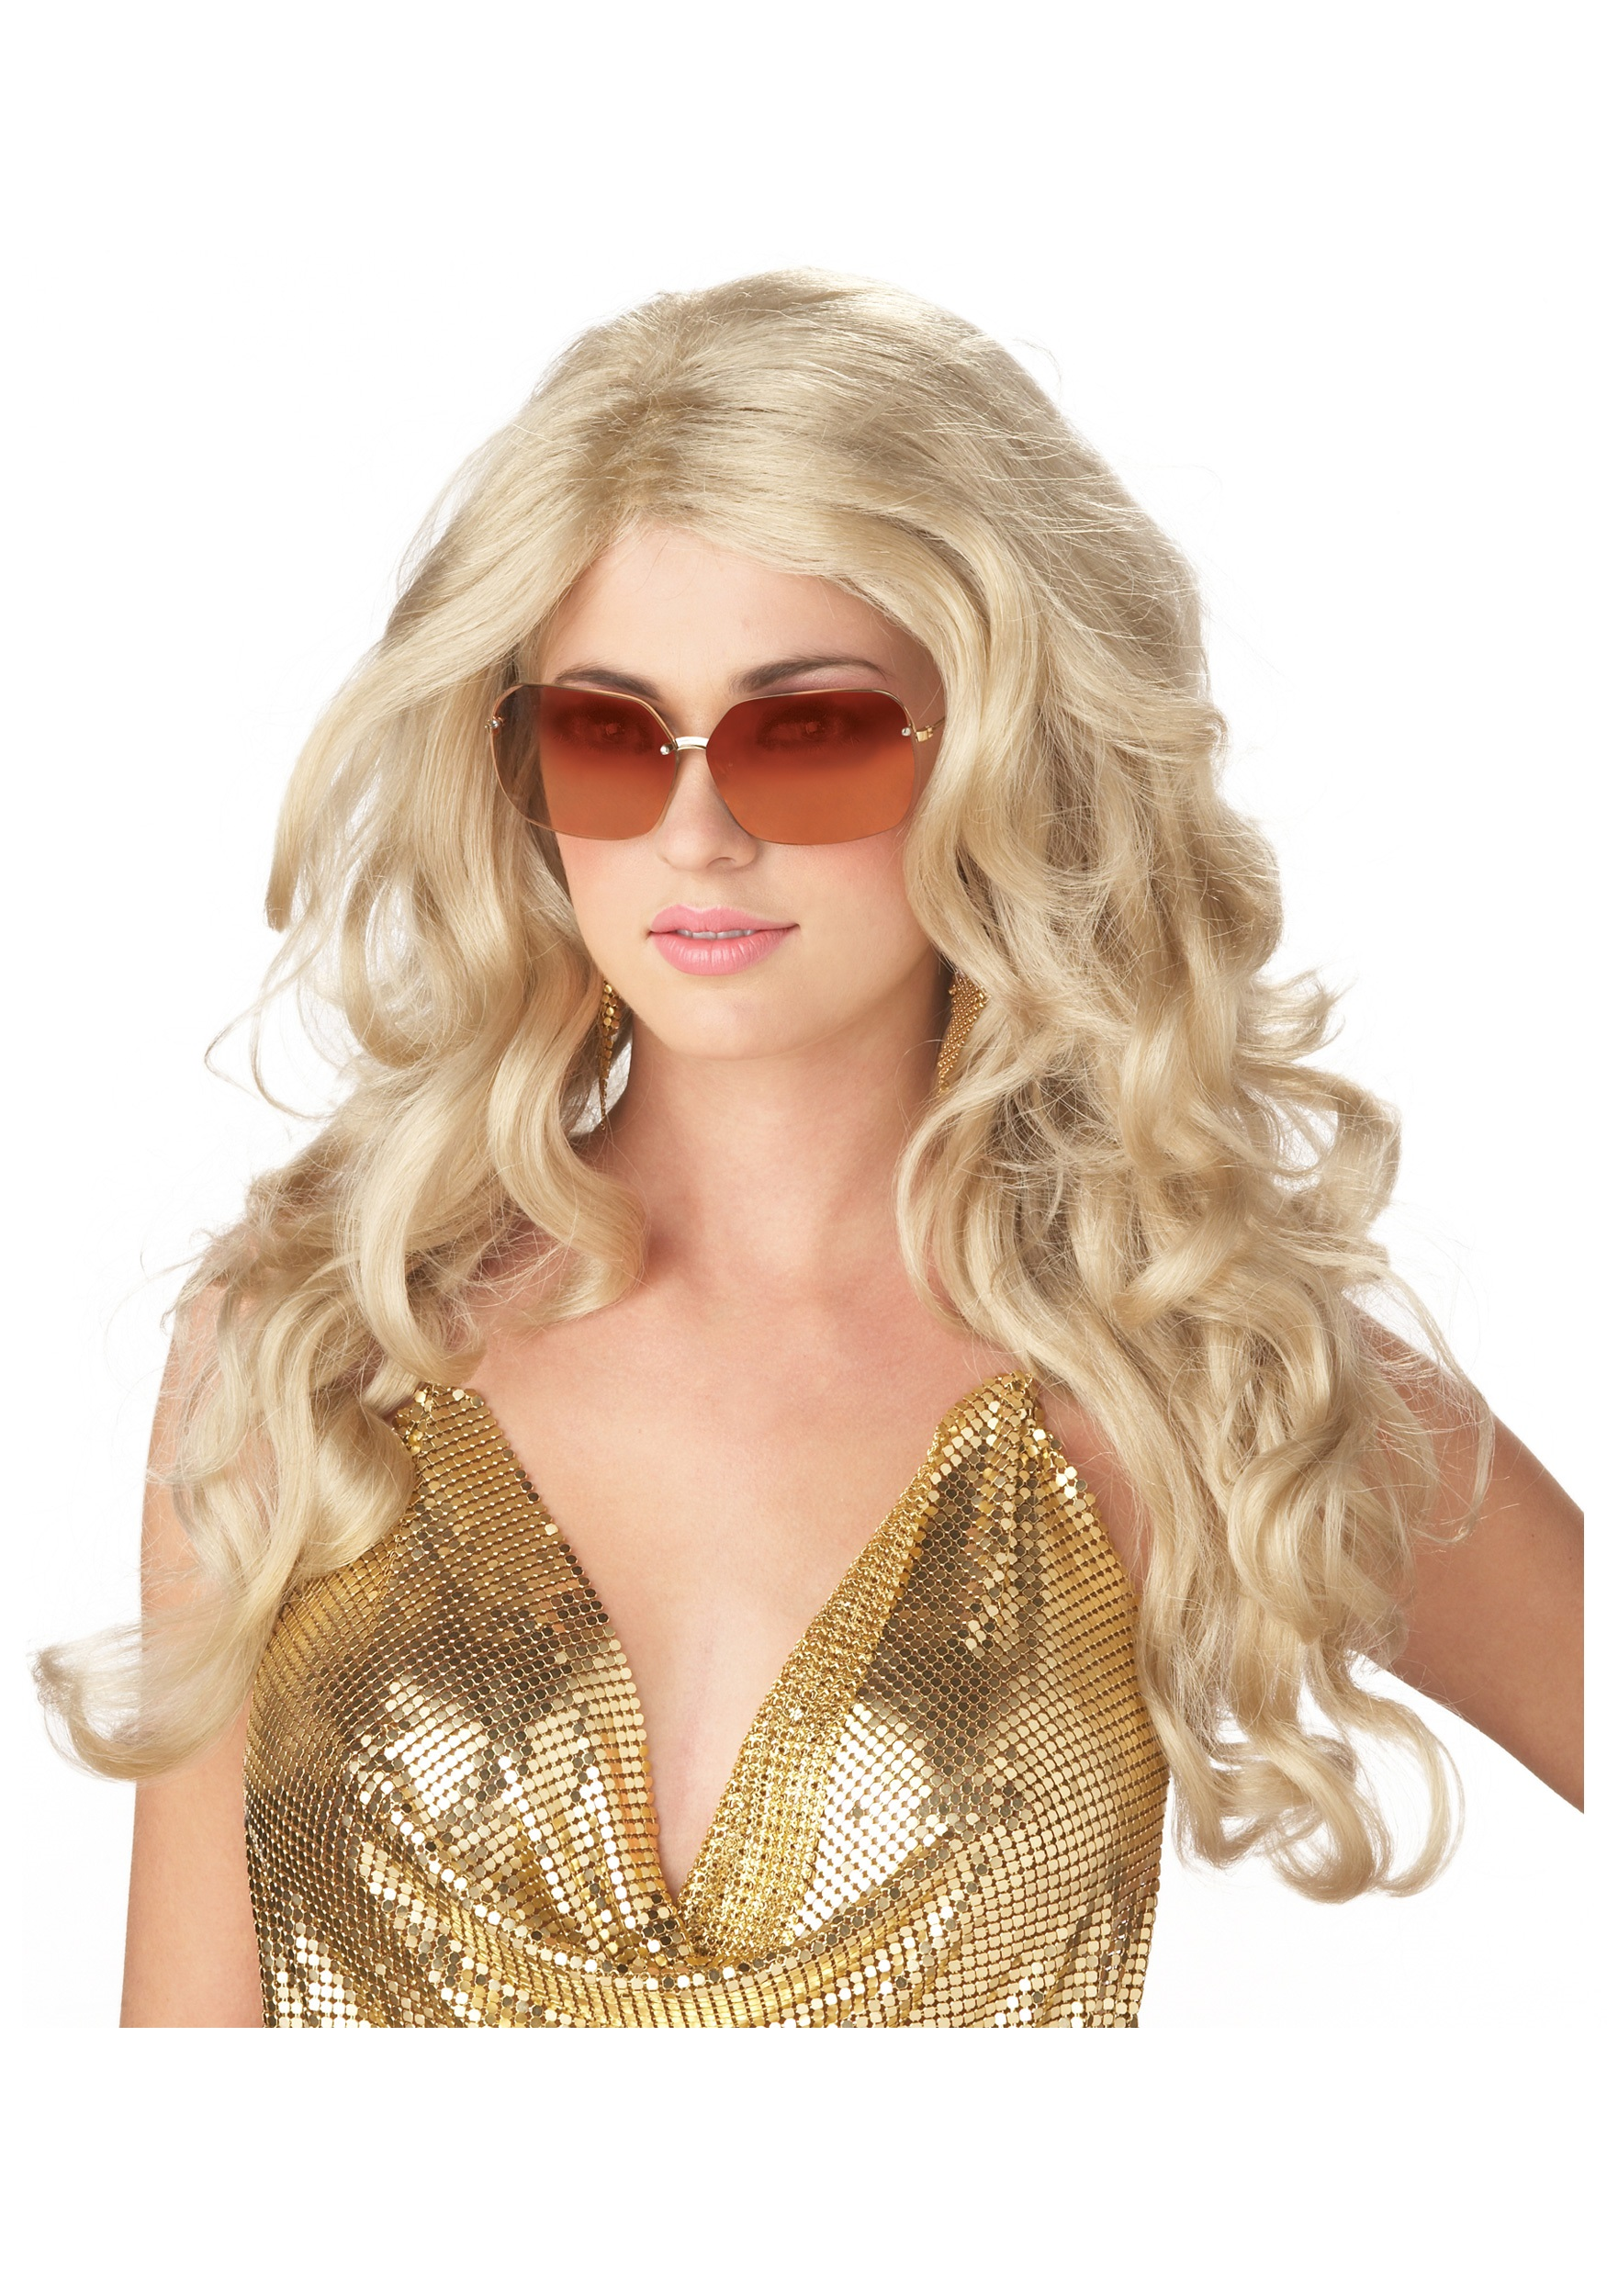 halloween costumes with blonde wigs 41 - Halloween Costumes With Blonde Wig